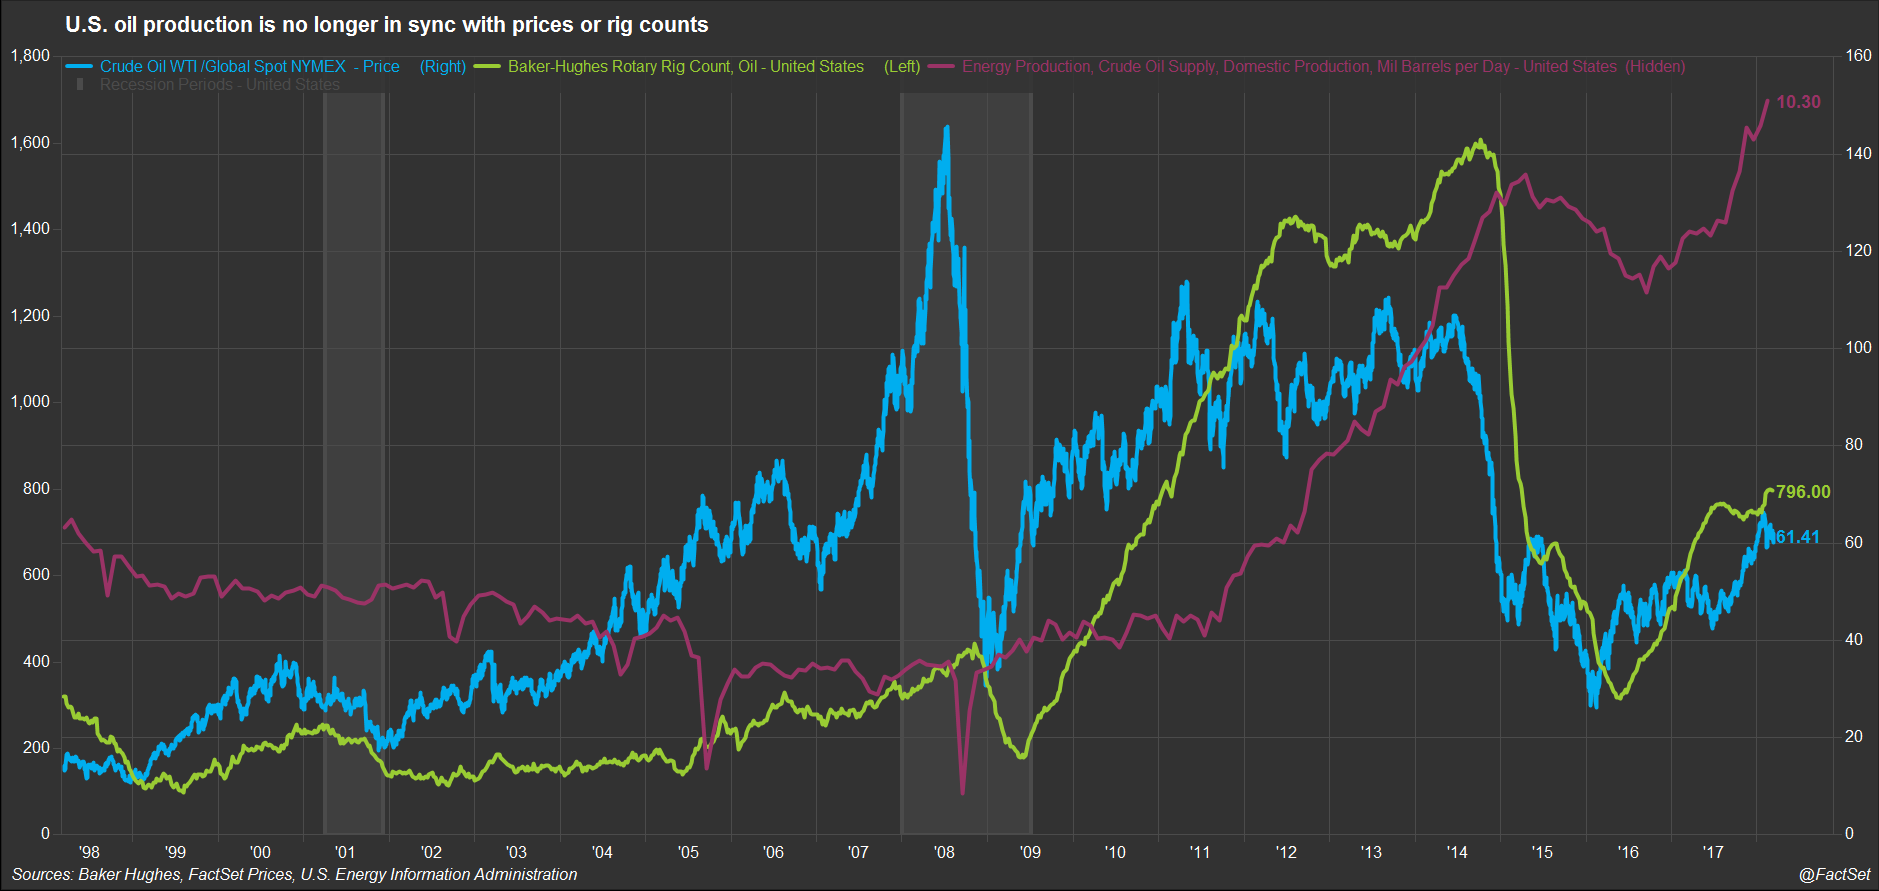 WTI price, number of oil rigs, monthly oil production